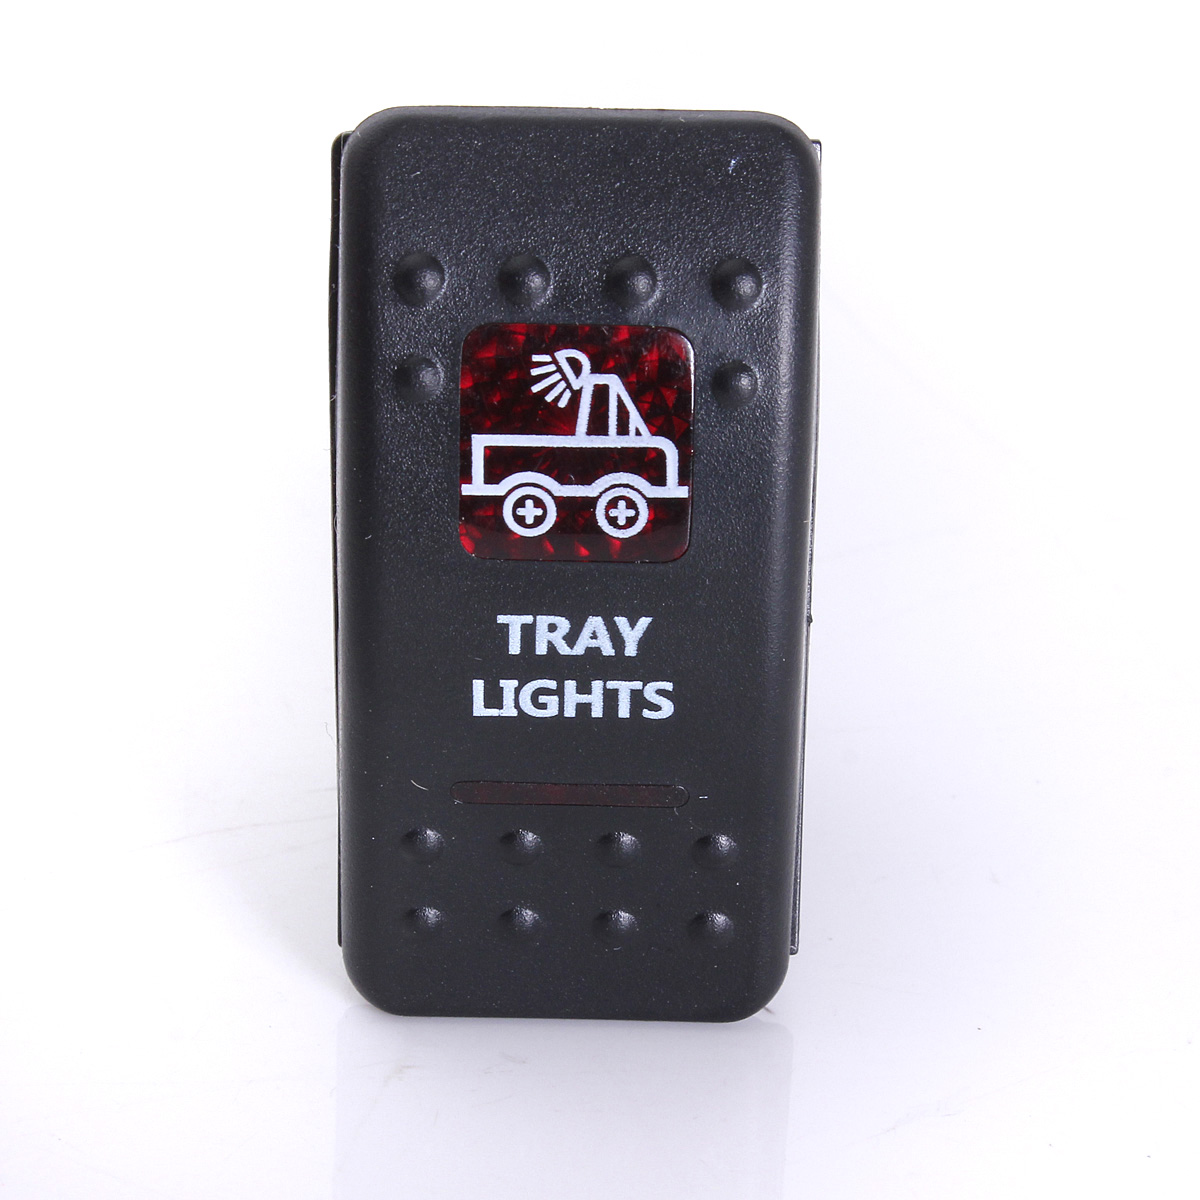 Rocker Switch Narva ARB Carling Style Dual LED Illuminated ON-OFF Roof Light Red